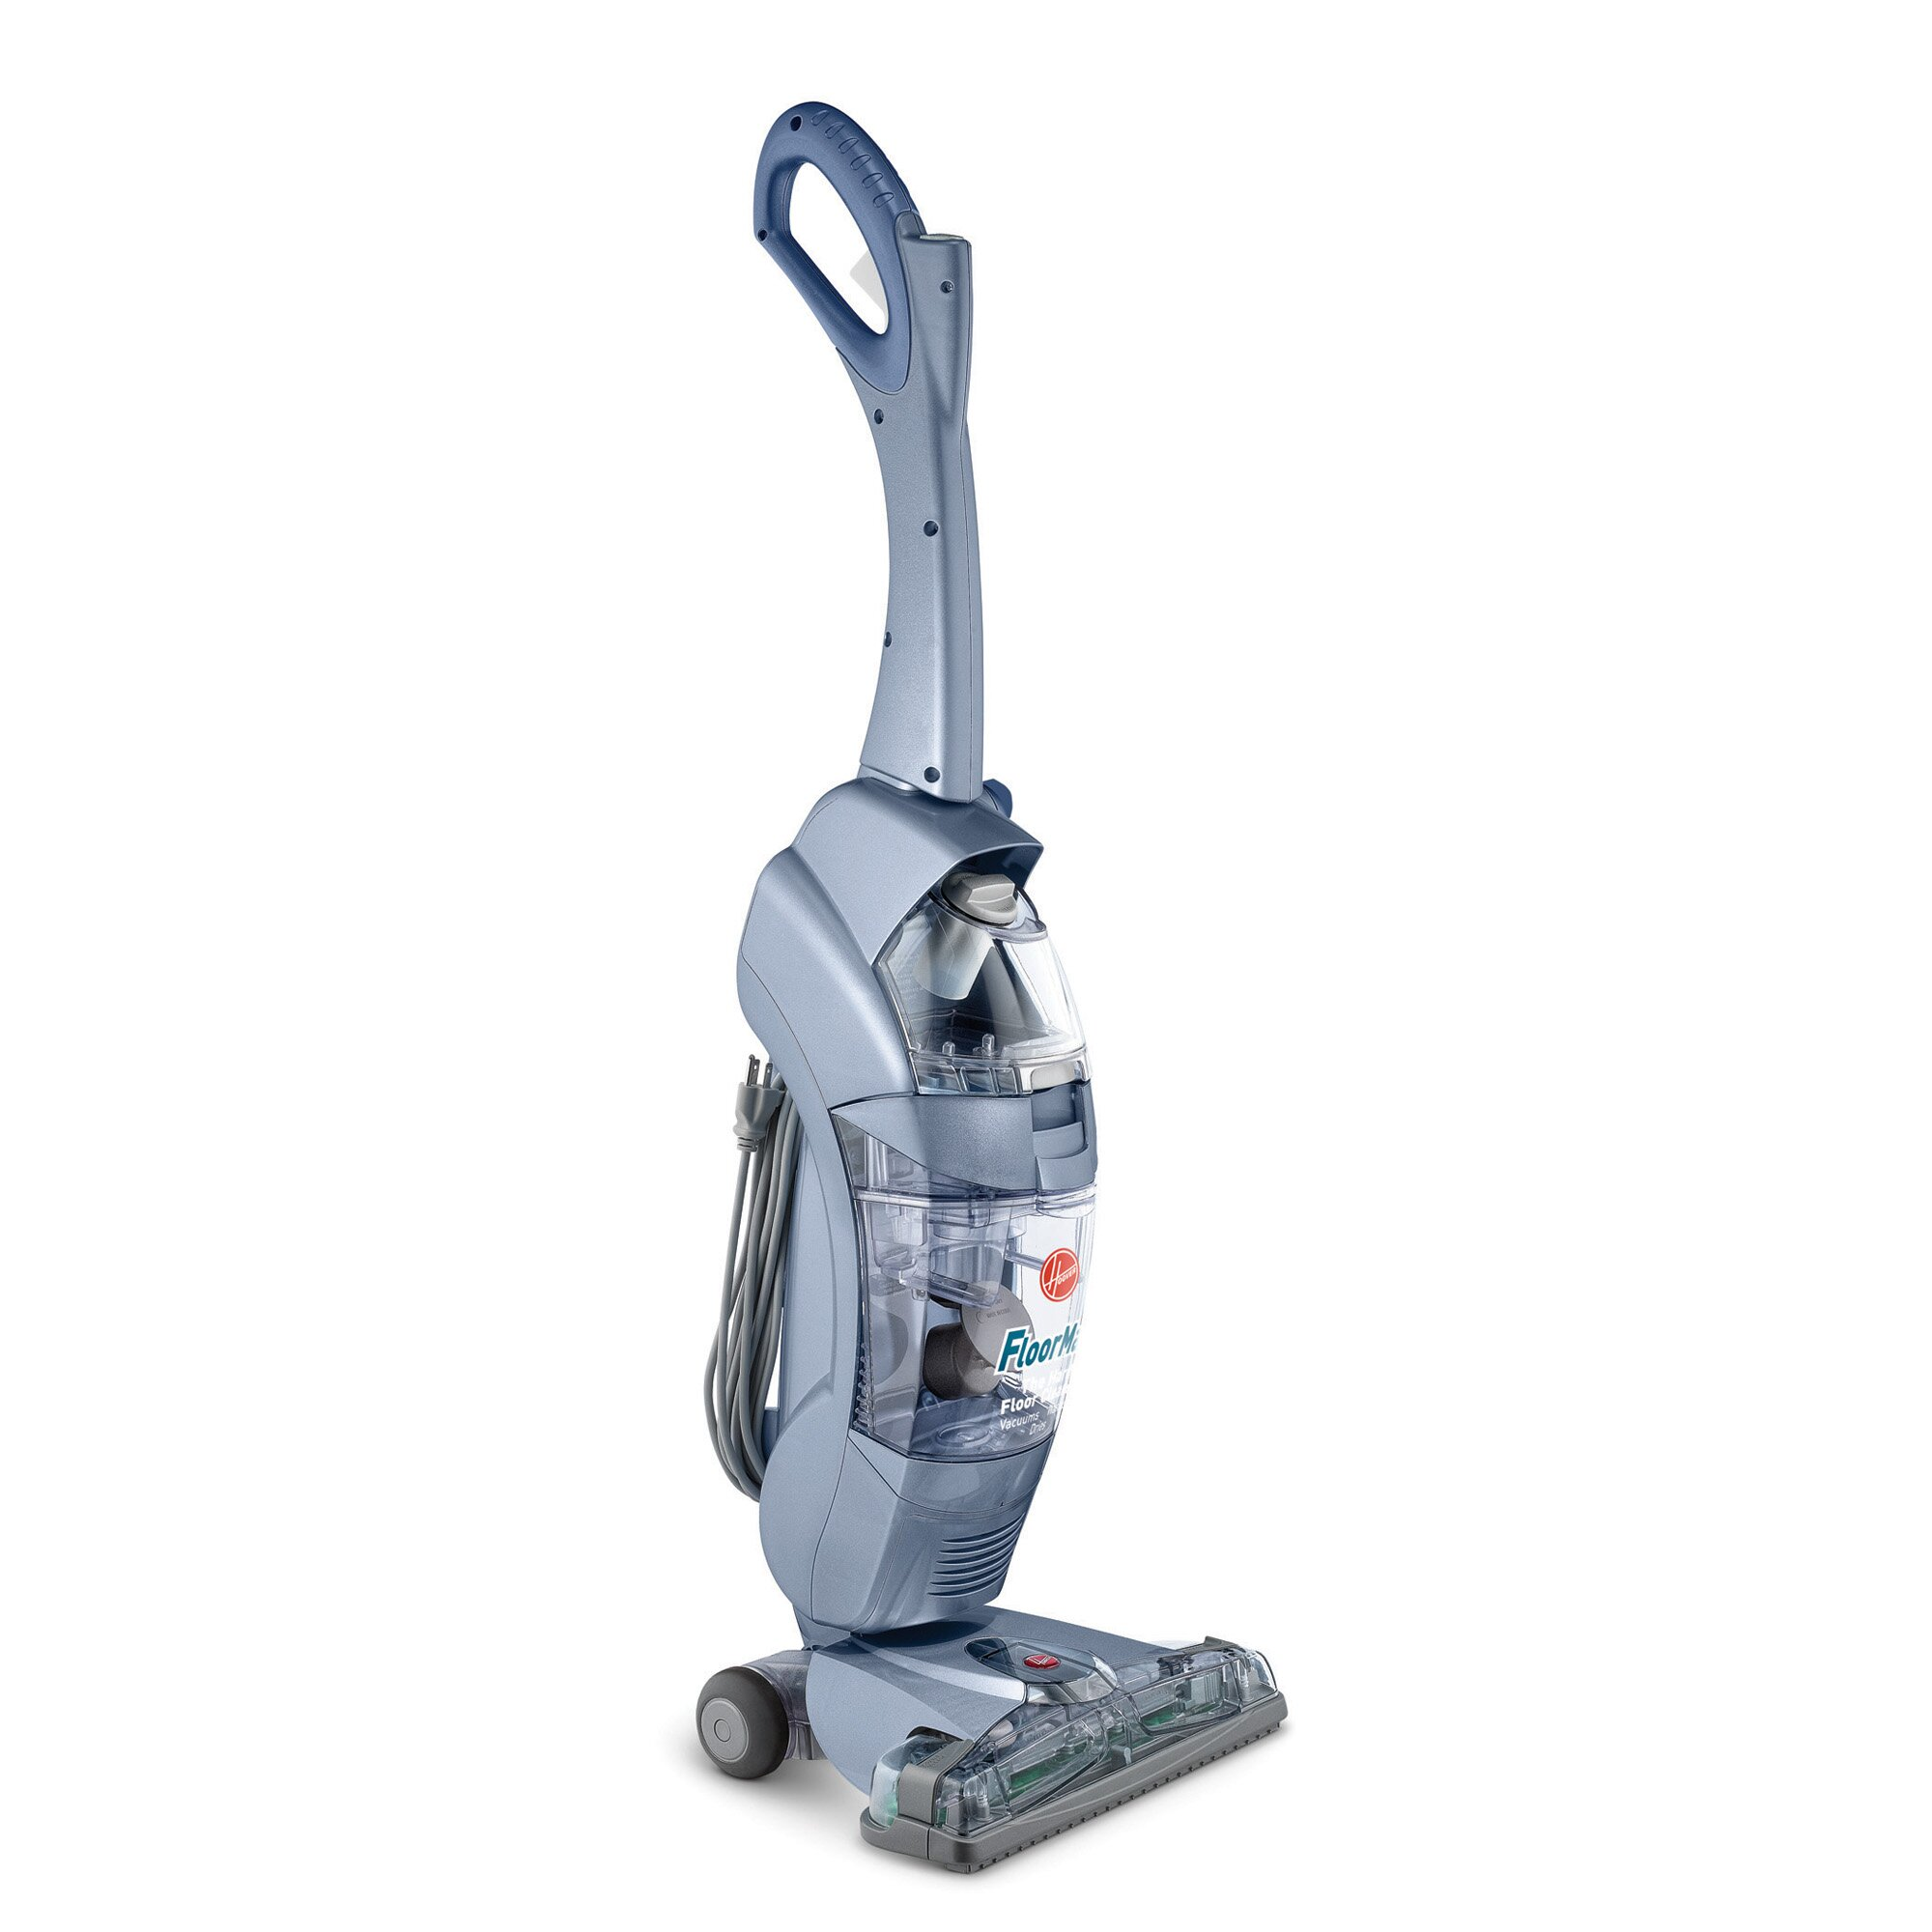 Hoover Floormate SpinScrub Widepath Hard Floor Cleaner